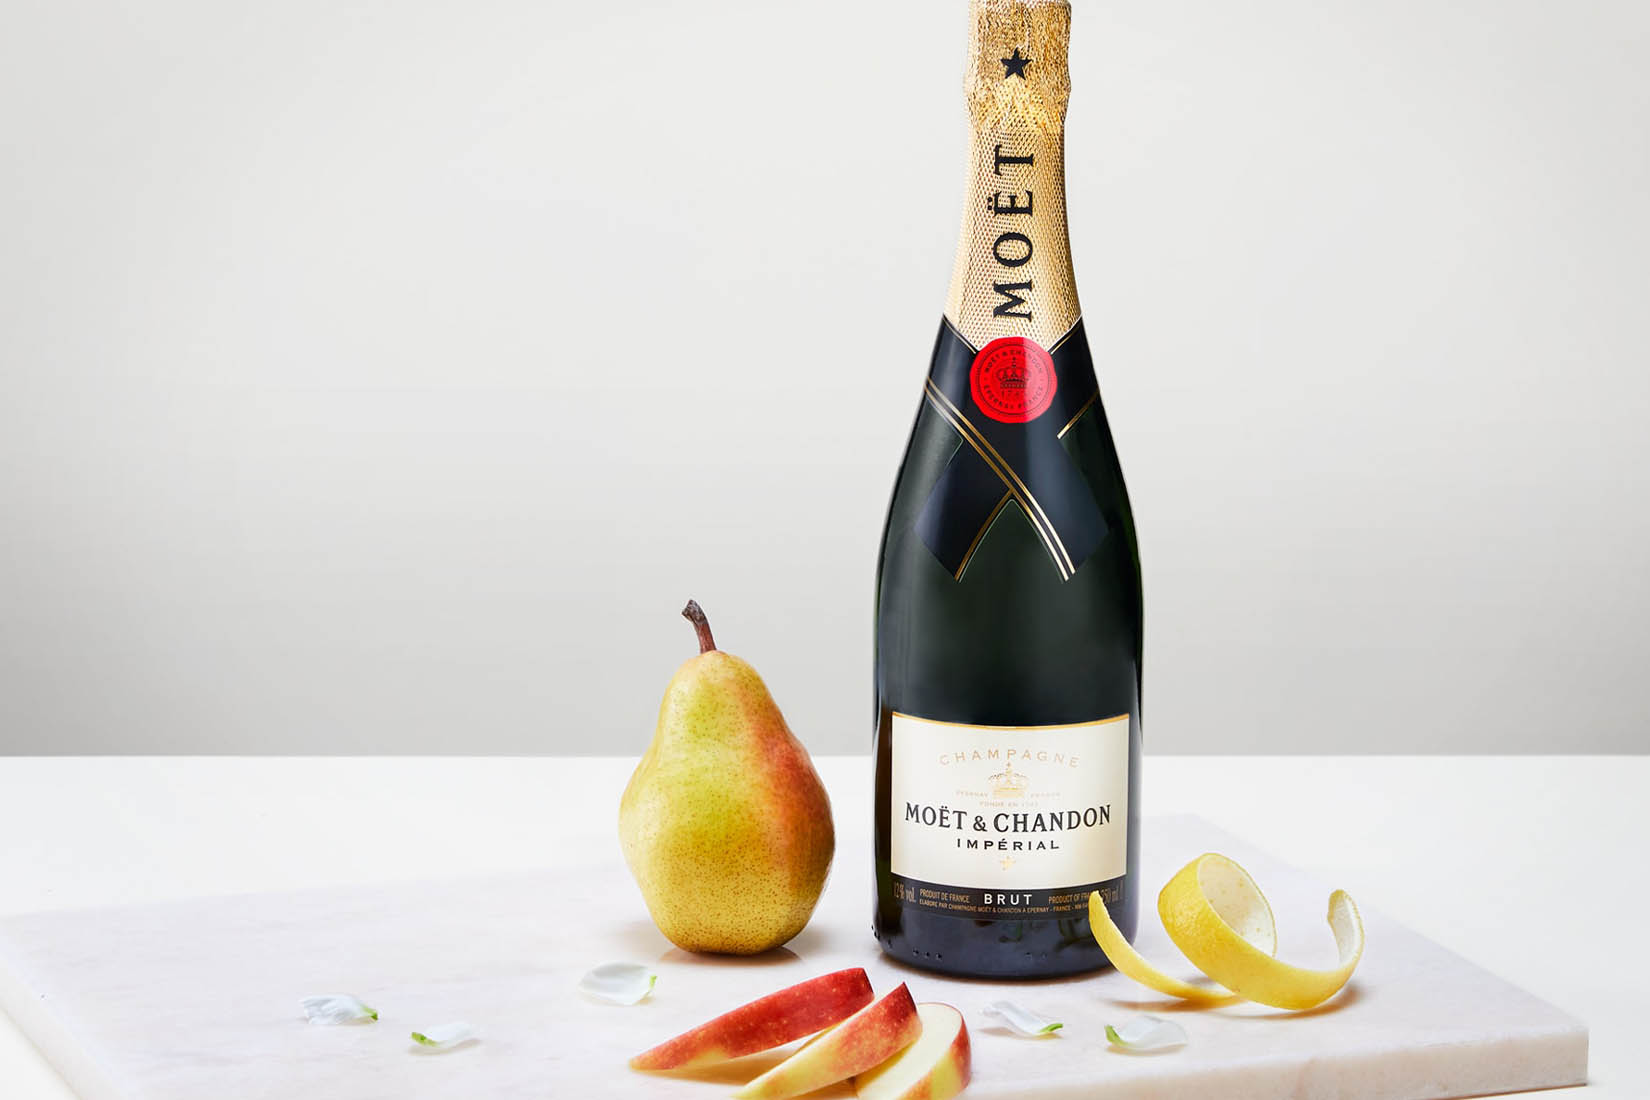 moet chandon champagne imperial brut price size Luxe Digital